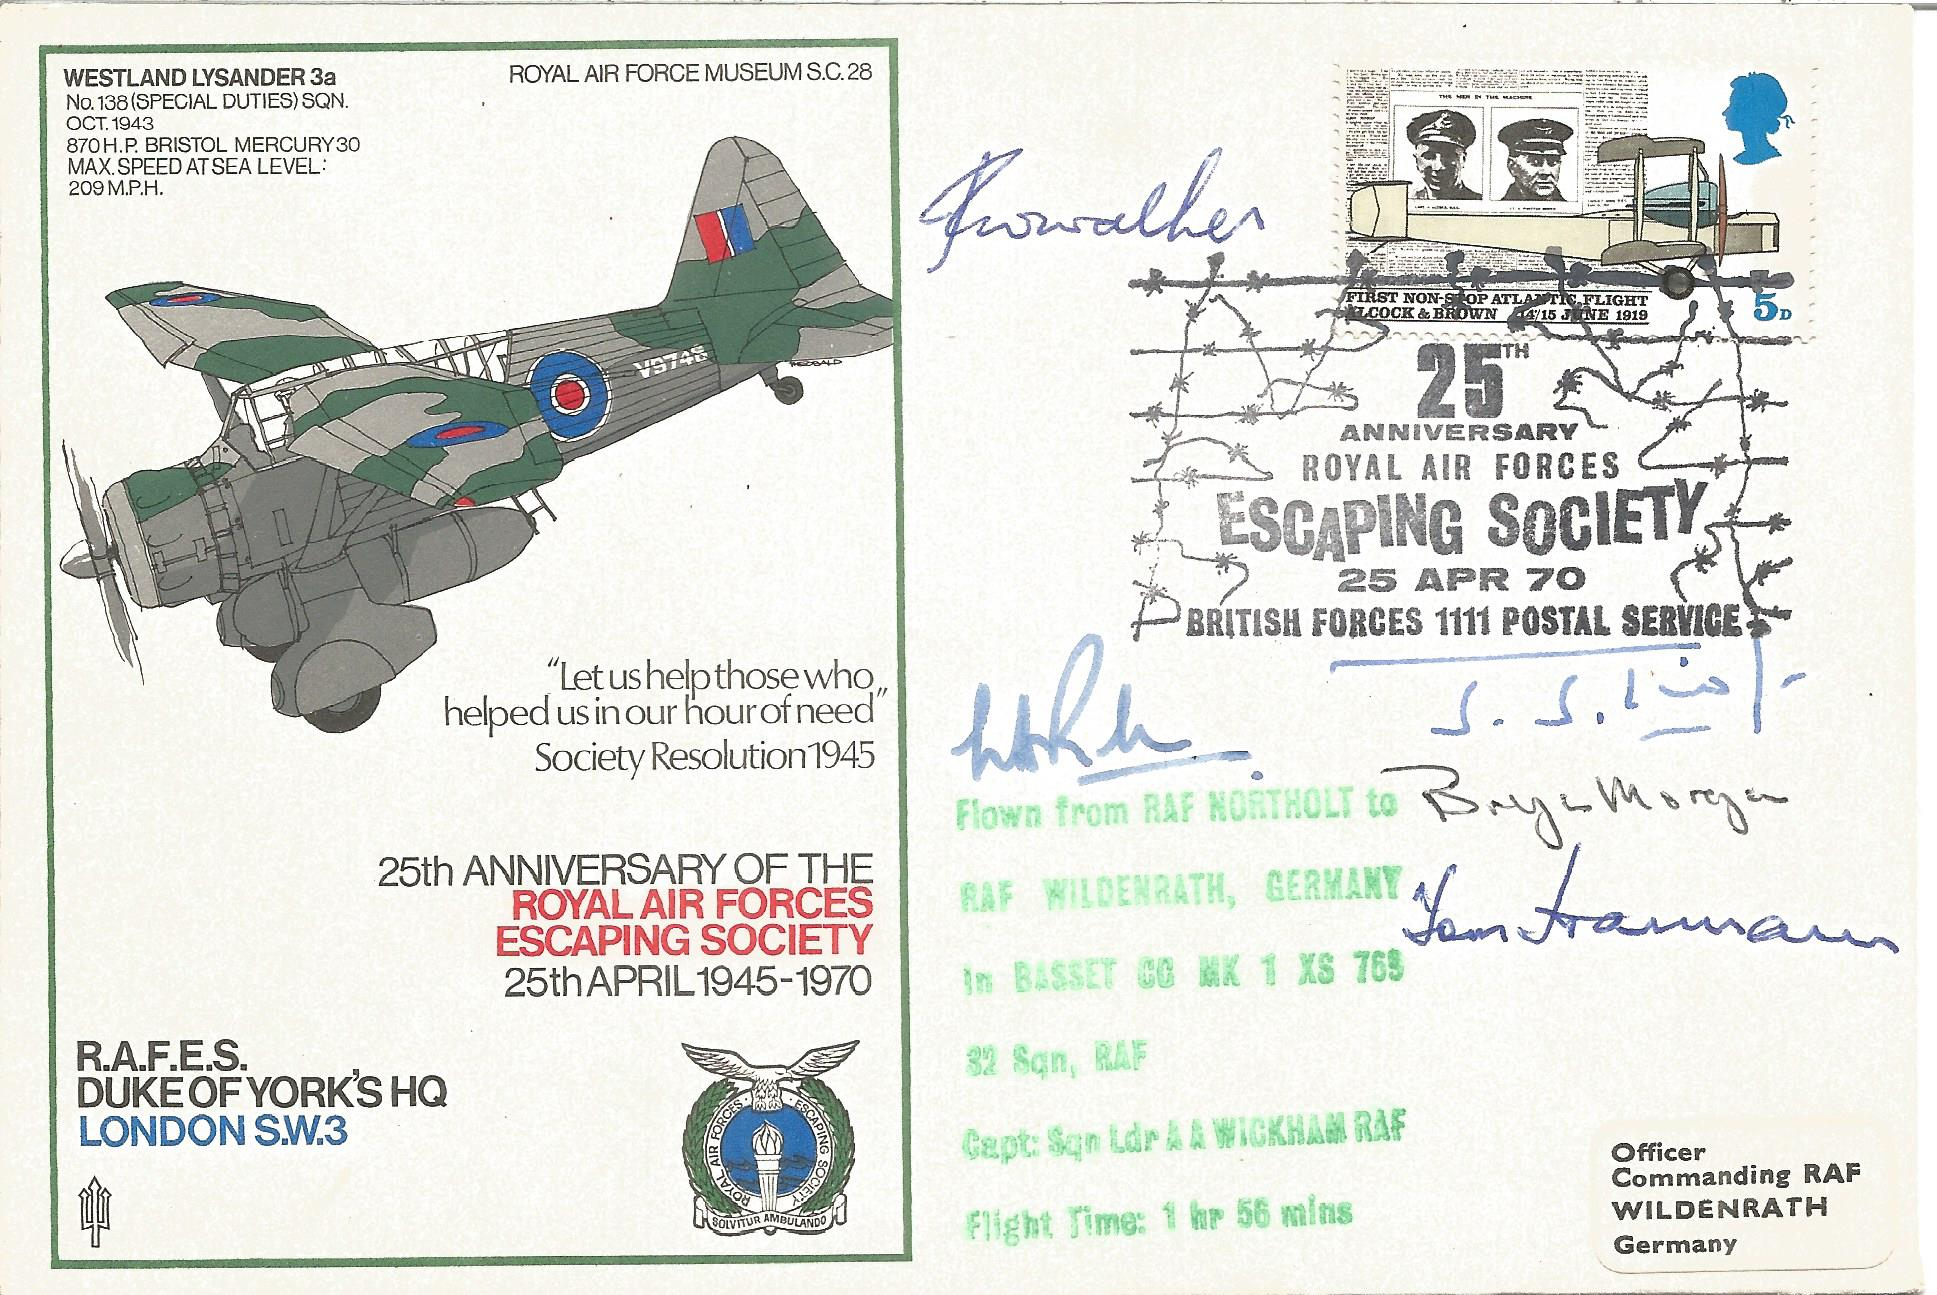 Grp Capt Bill Randle, B. Morgan with three others signed 25th Anniversary of the Royal Air Forces